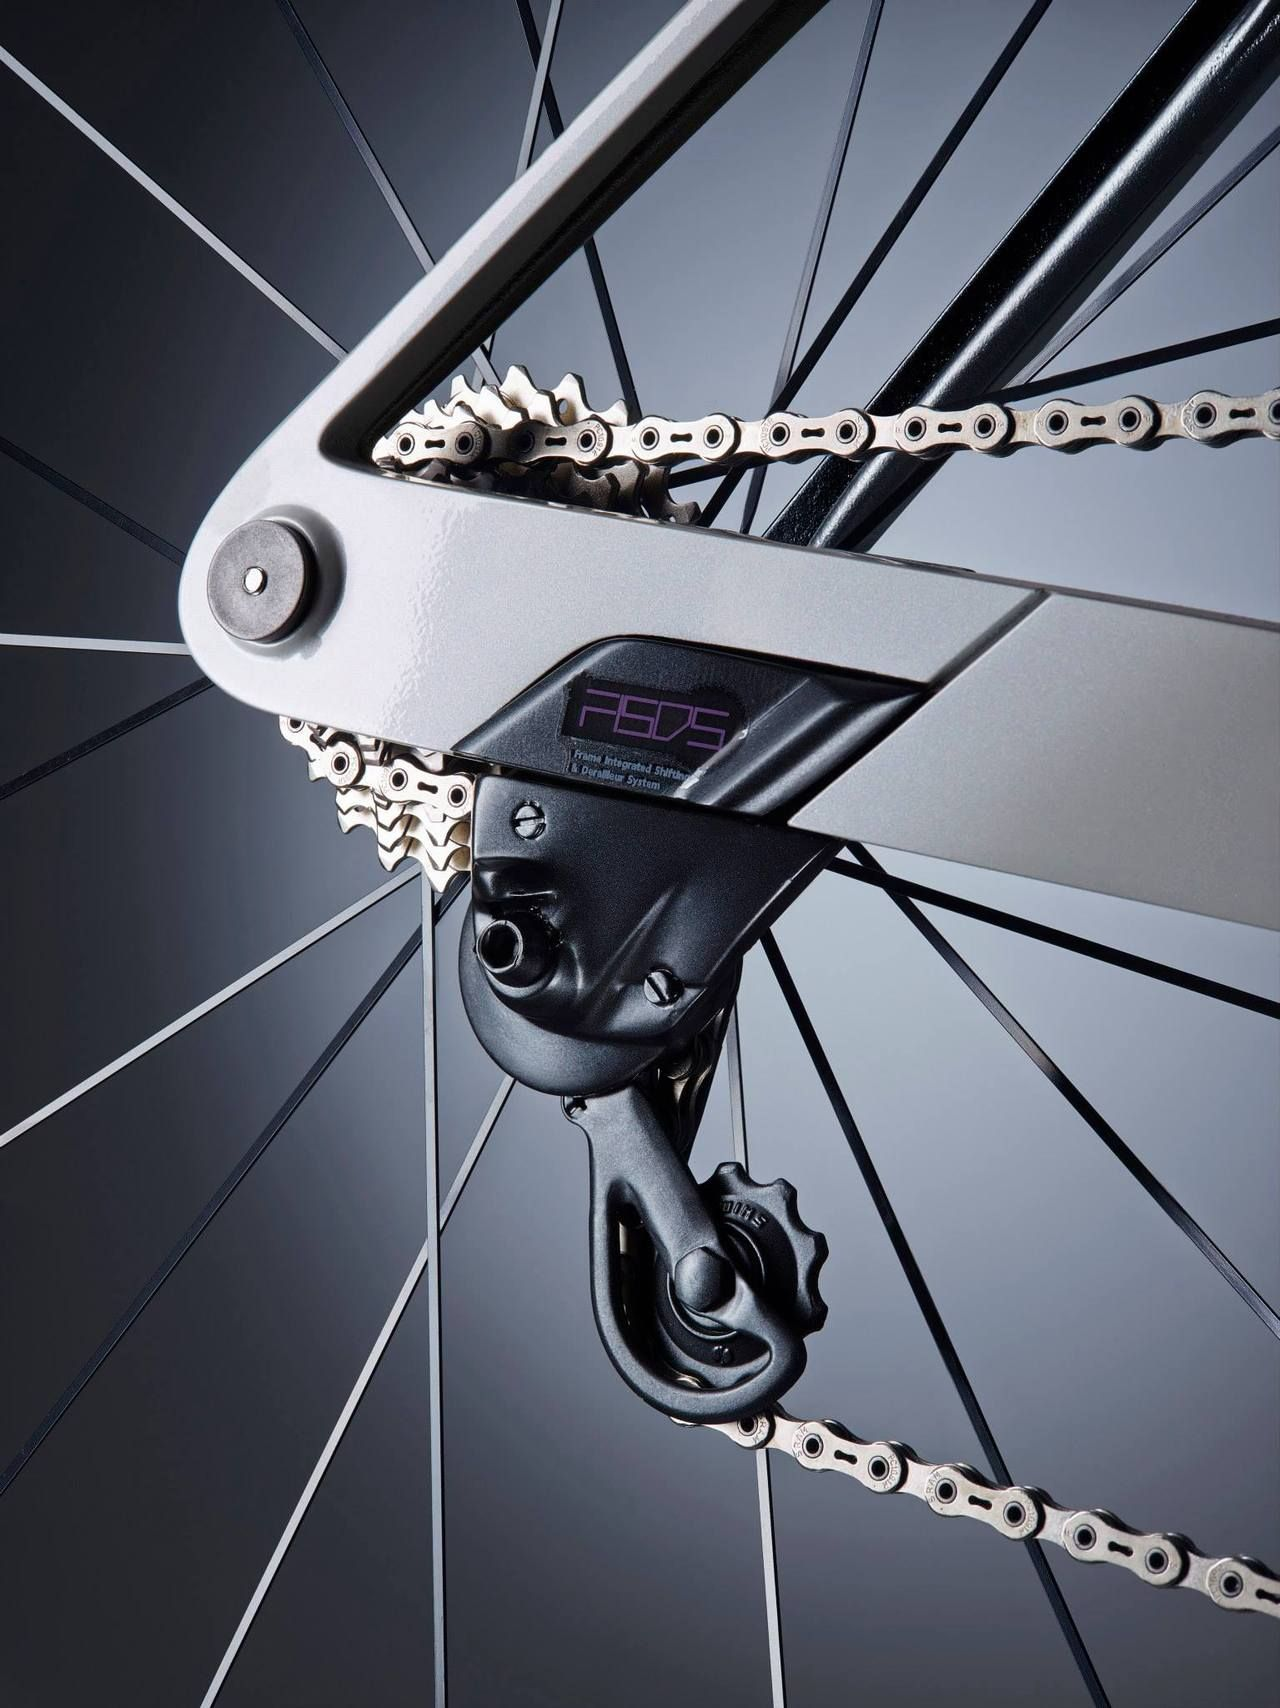 What Is This Elegant Contraption Visit Us Http Www Wocycling Com For The Best Online Cycling Store Bike Design Bicycle Cycling Design